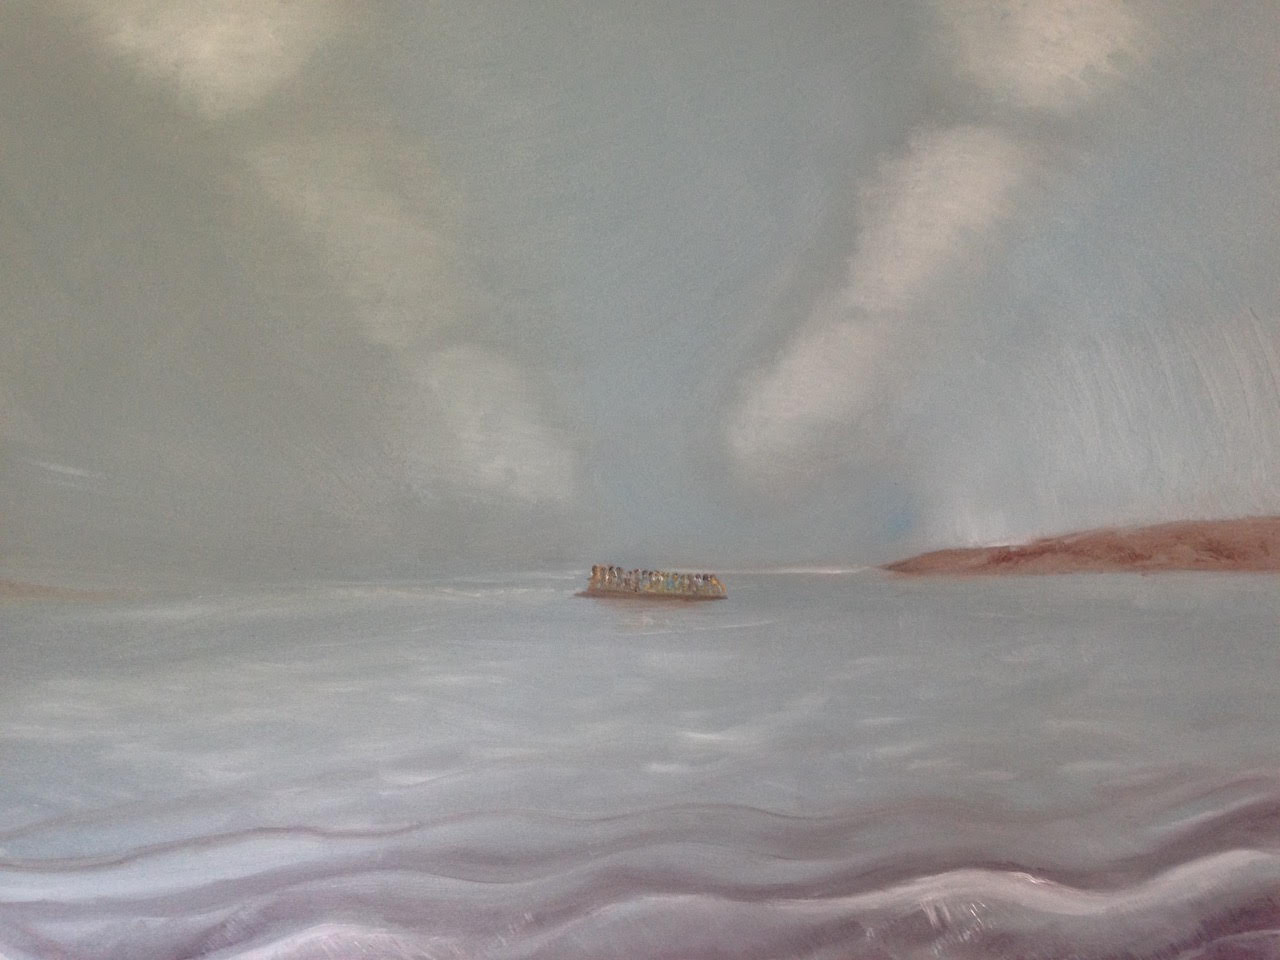 Arriving at Lesvos Ant Wooding Oils on Canvas 90cm x 70cm For Sale by Bid, (starting bid £330), with 100% of proceeds going to Suffolk Refugee Support *This painting was inspired by an original photograph, 'A boat carrying over 40 Afghans approaches Lesvos after crossing the Aegean from Turkey - Lesvos, Greece. October 31st 2015', by Giles Duley.